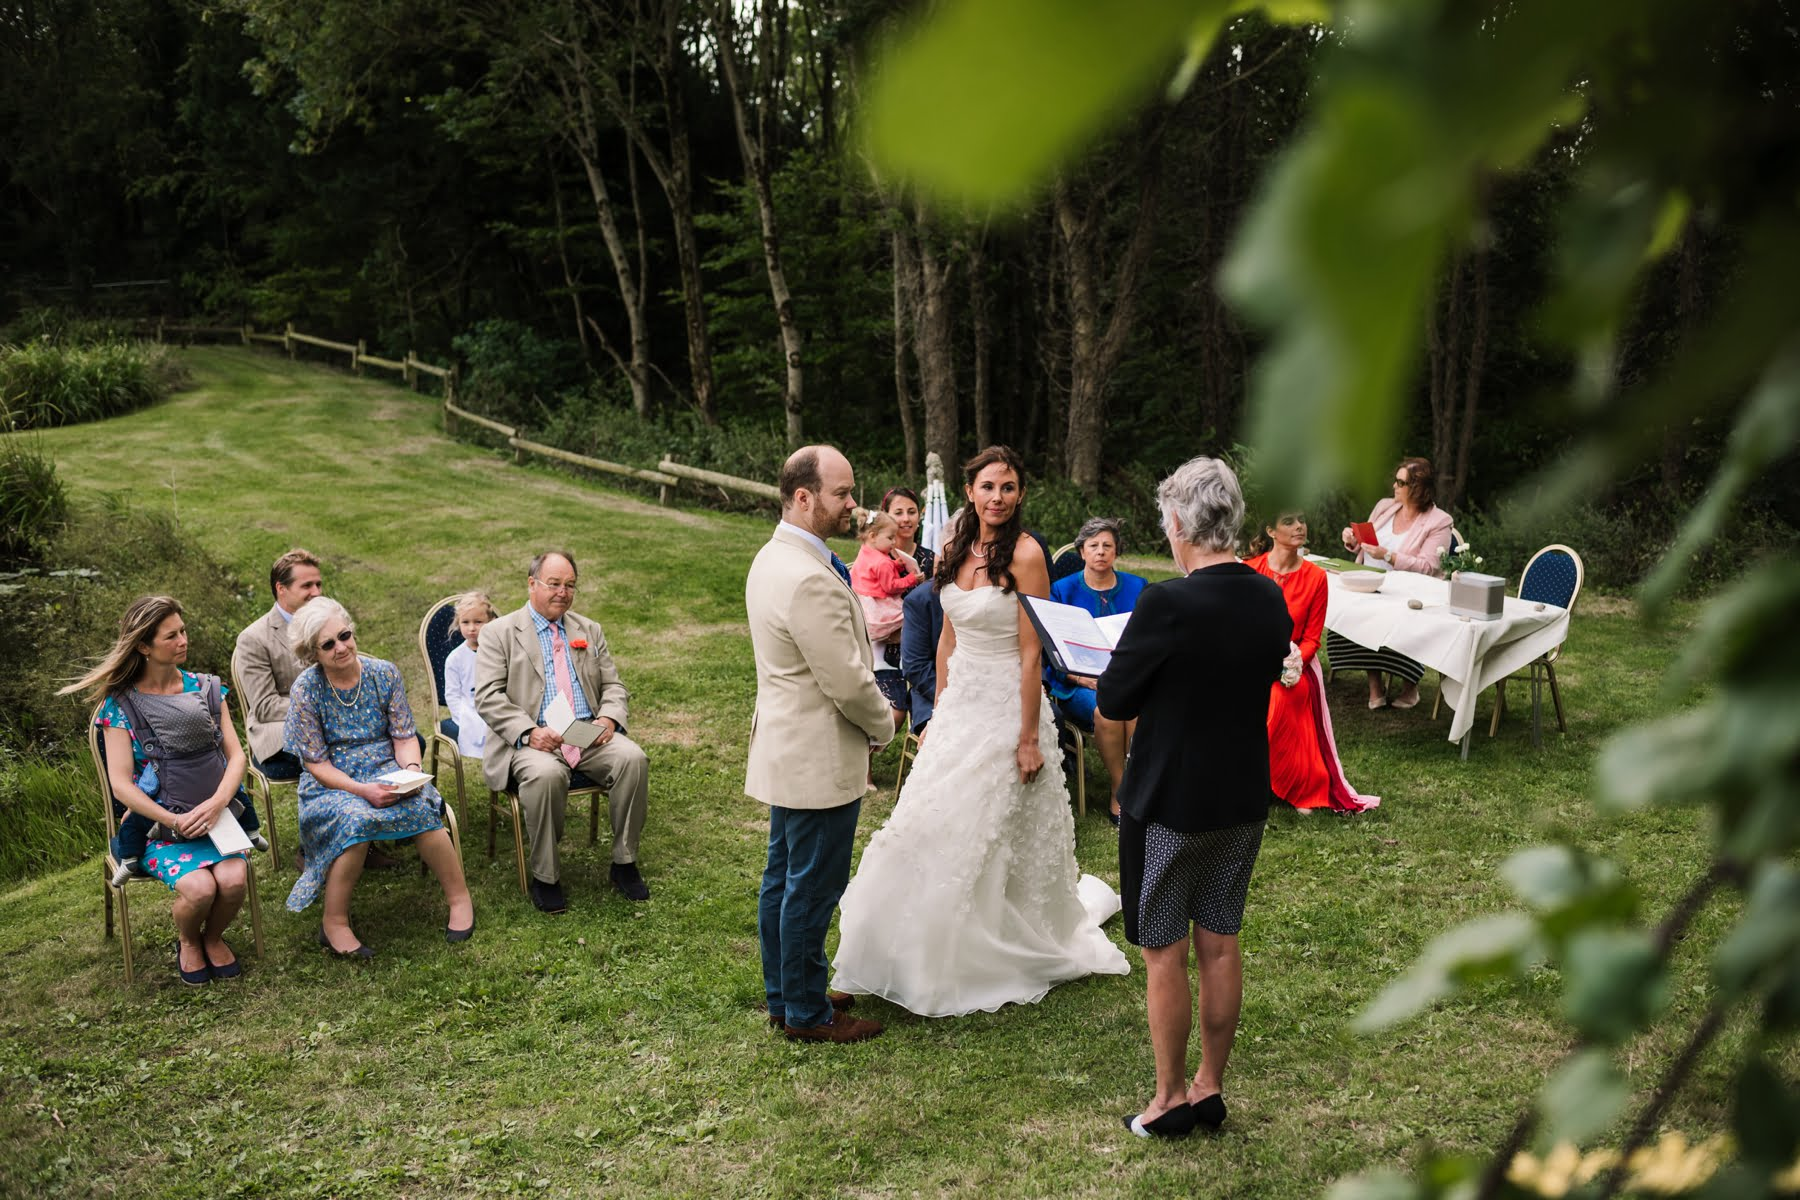 Outdoor wedding ceremony at Luccombe Farm